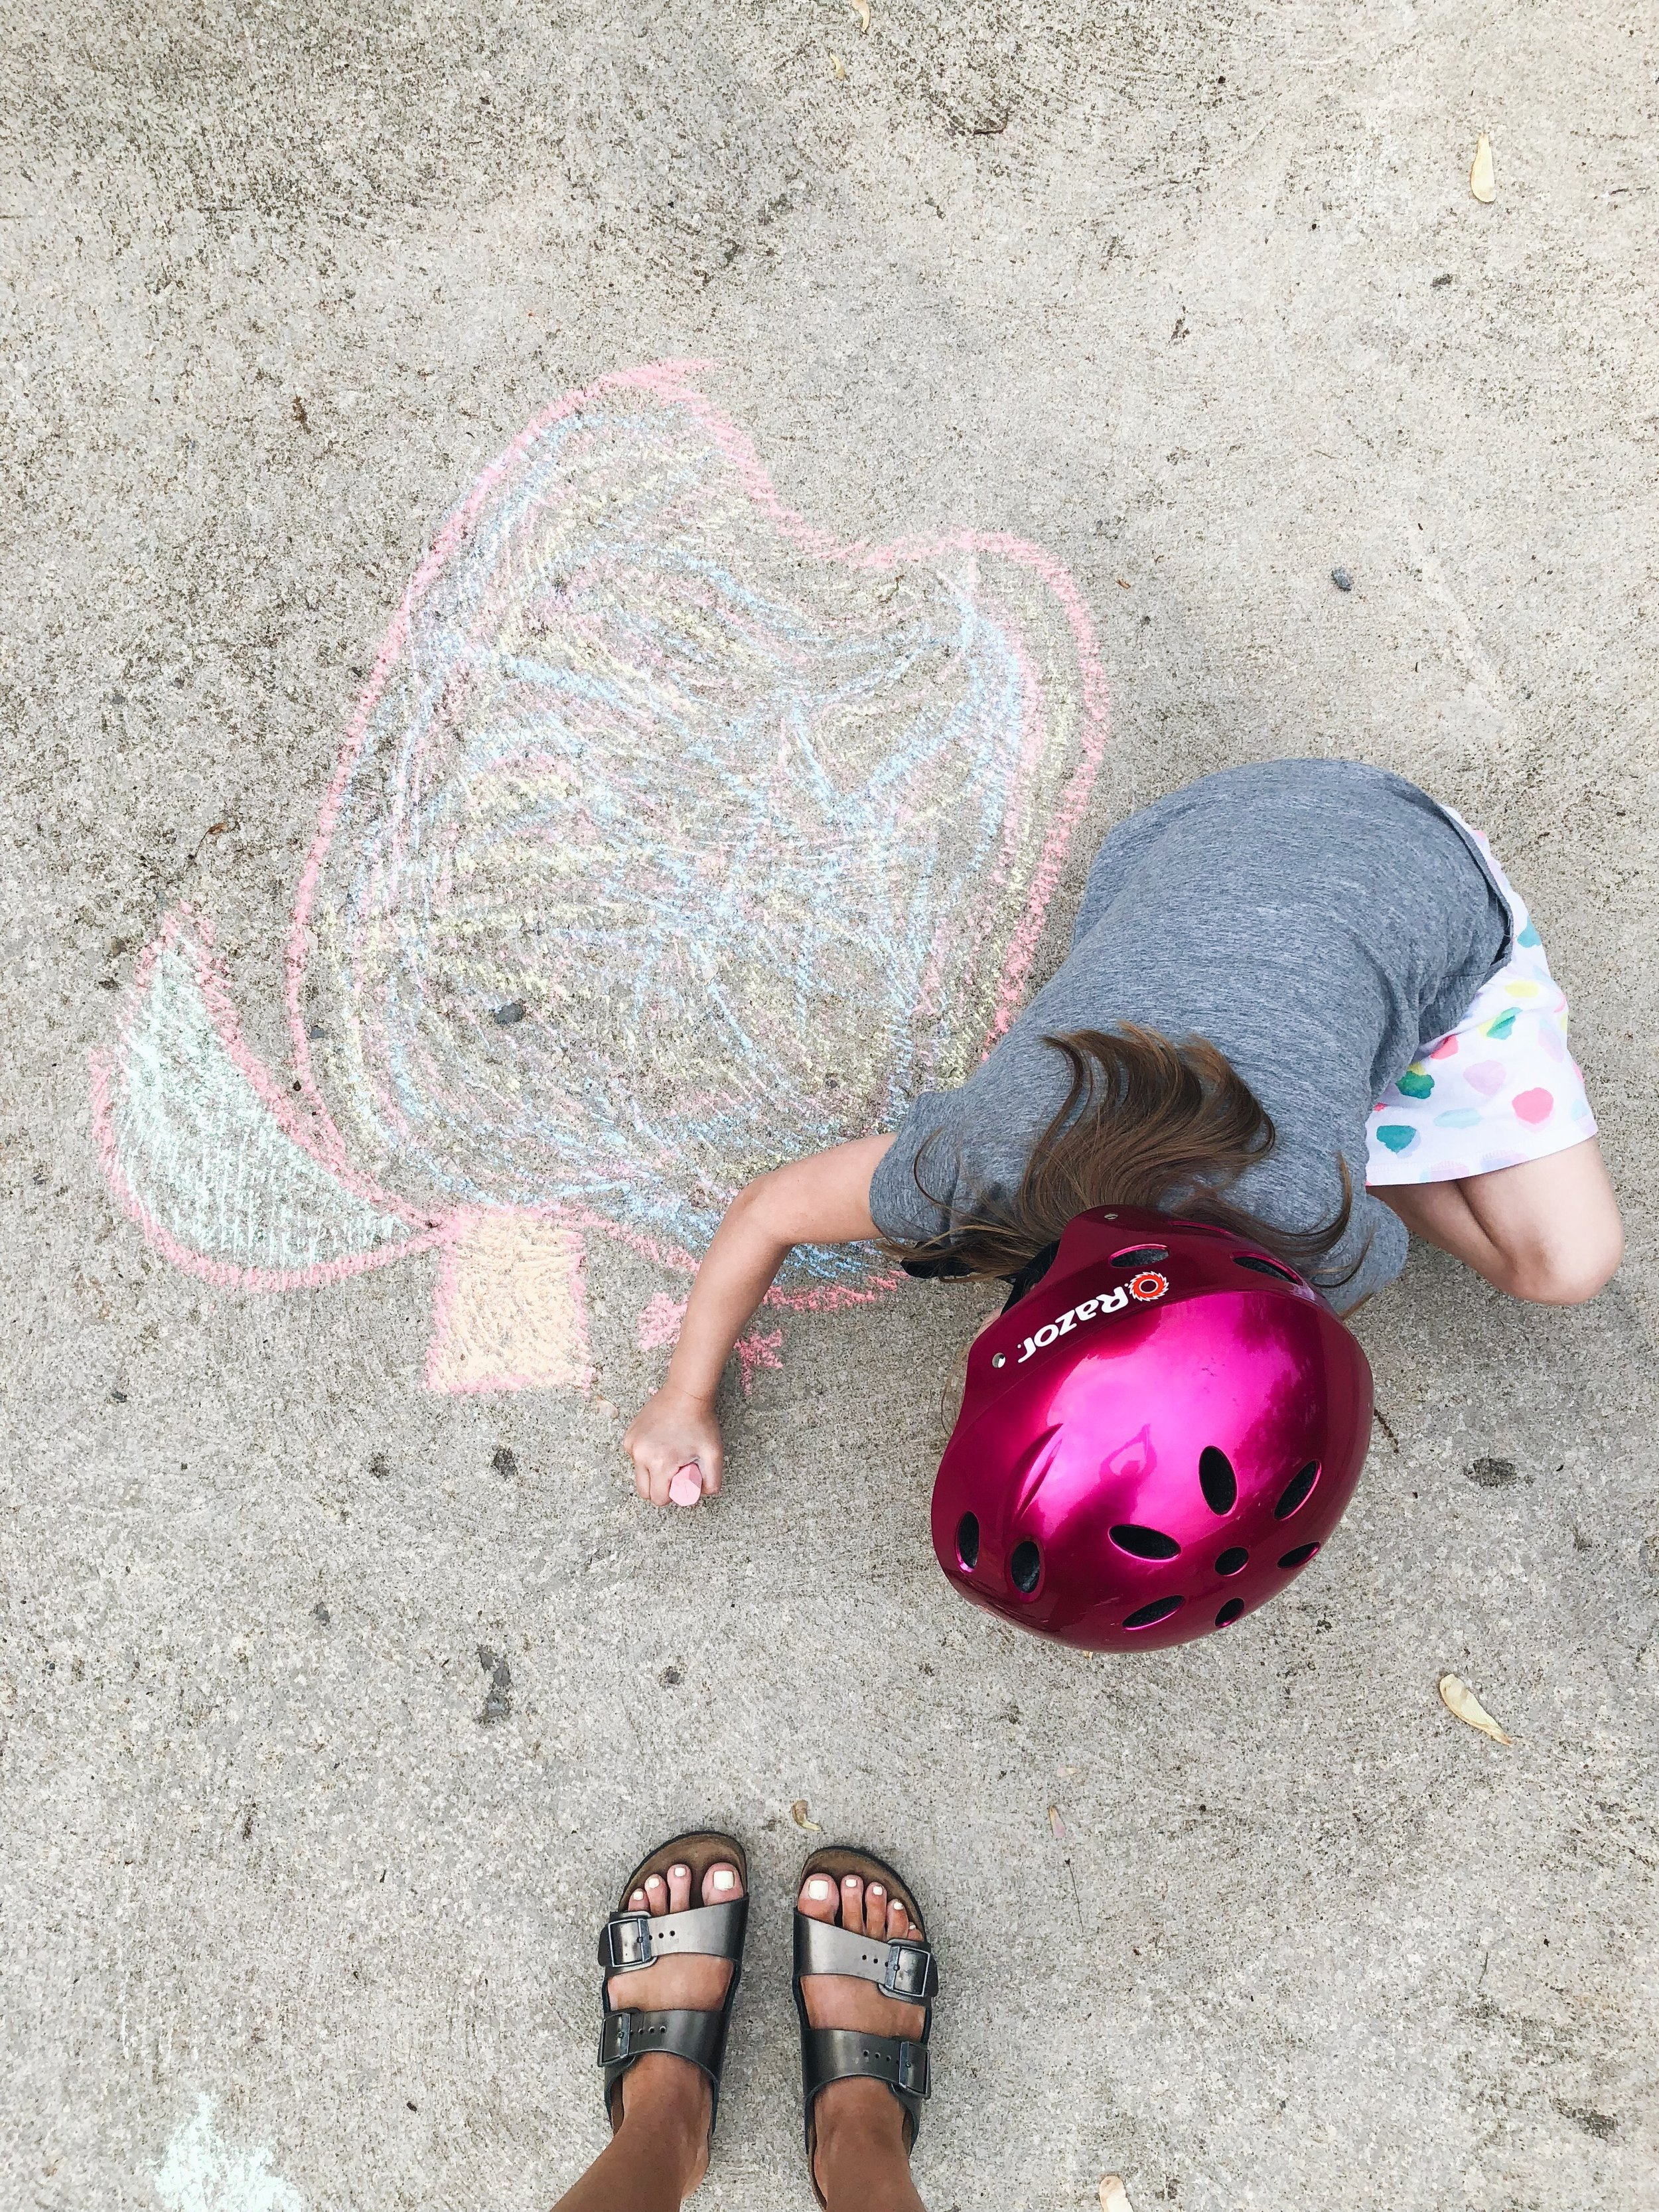 Stella-Sidewalk-Chalk-Meadville-lovenothingmore-blogger.JPG